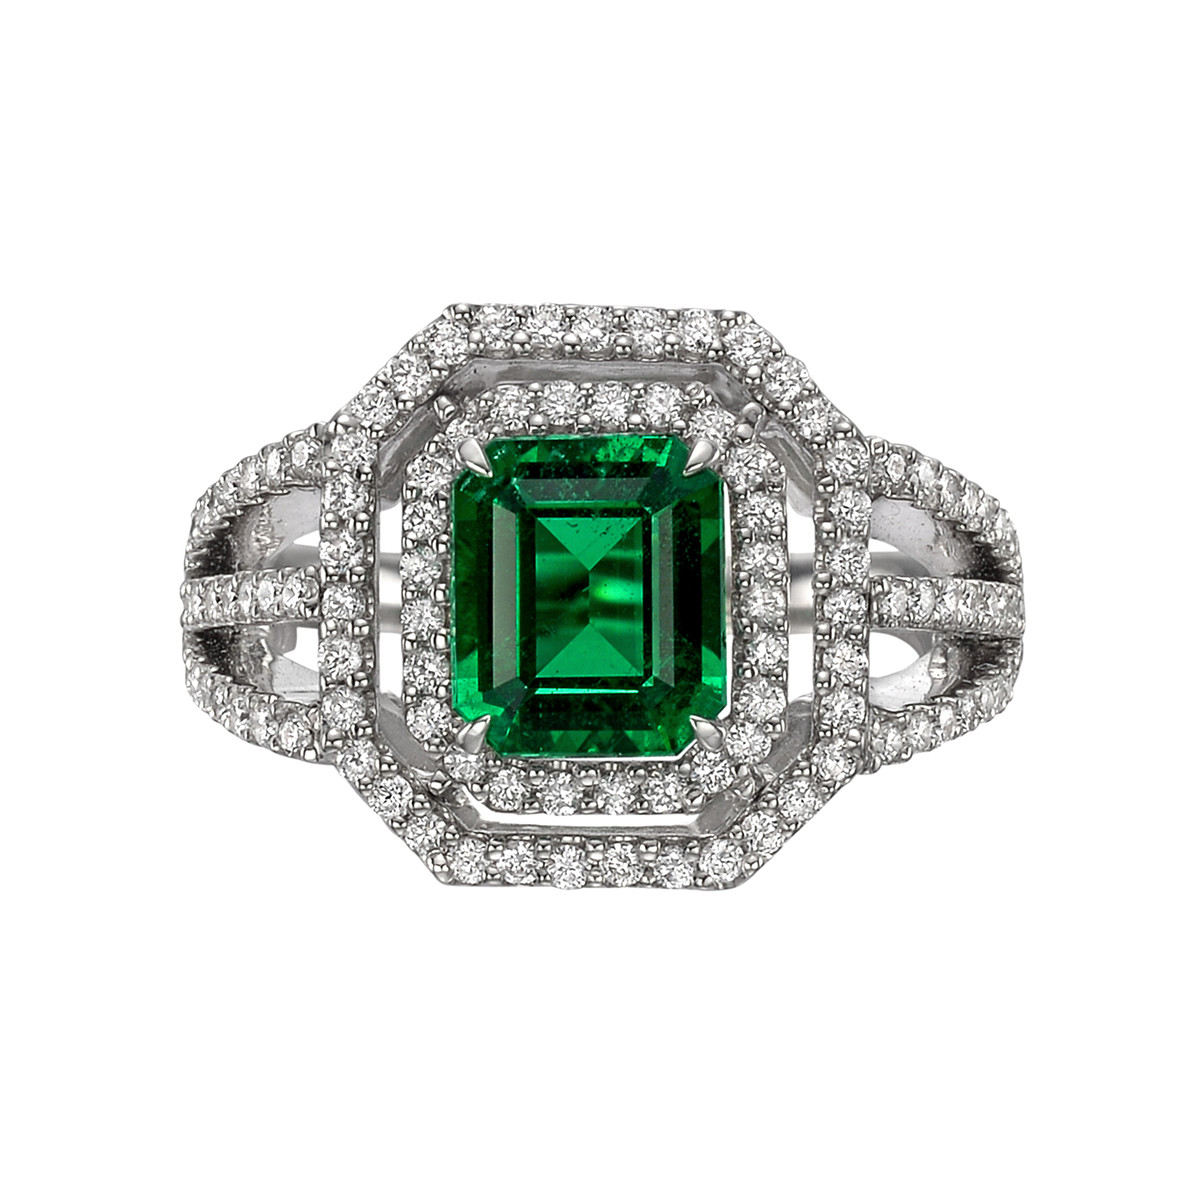 1.49 Carat No-Oil Emerald & Diamond Ring